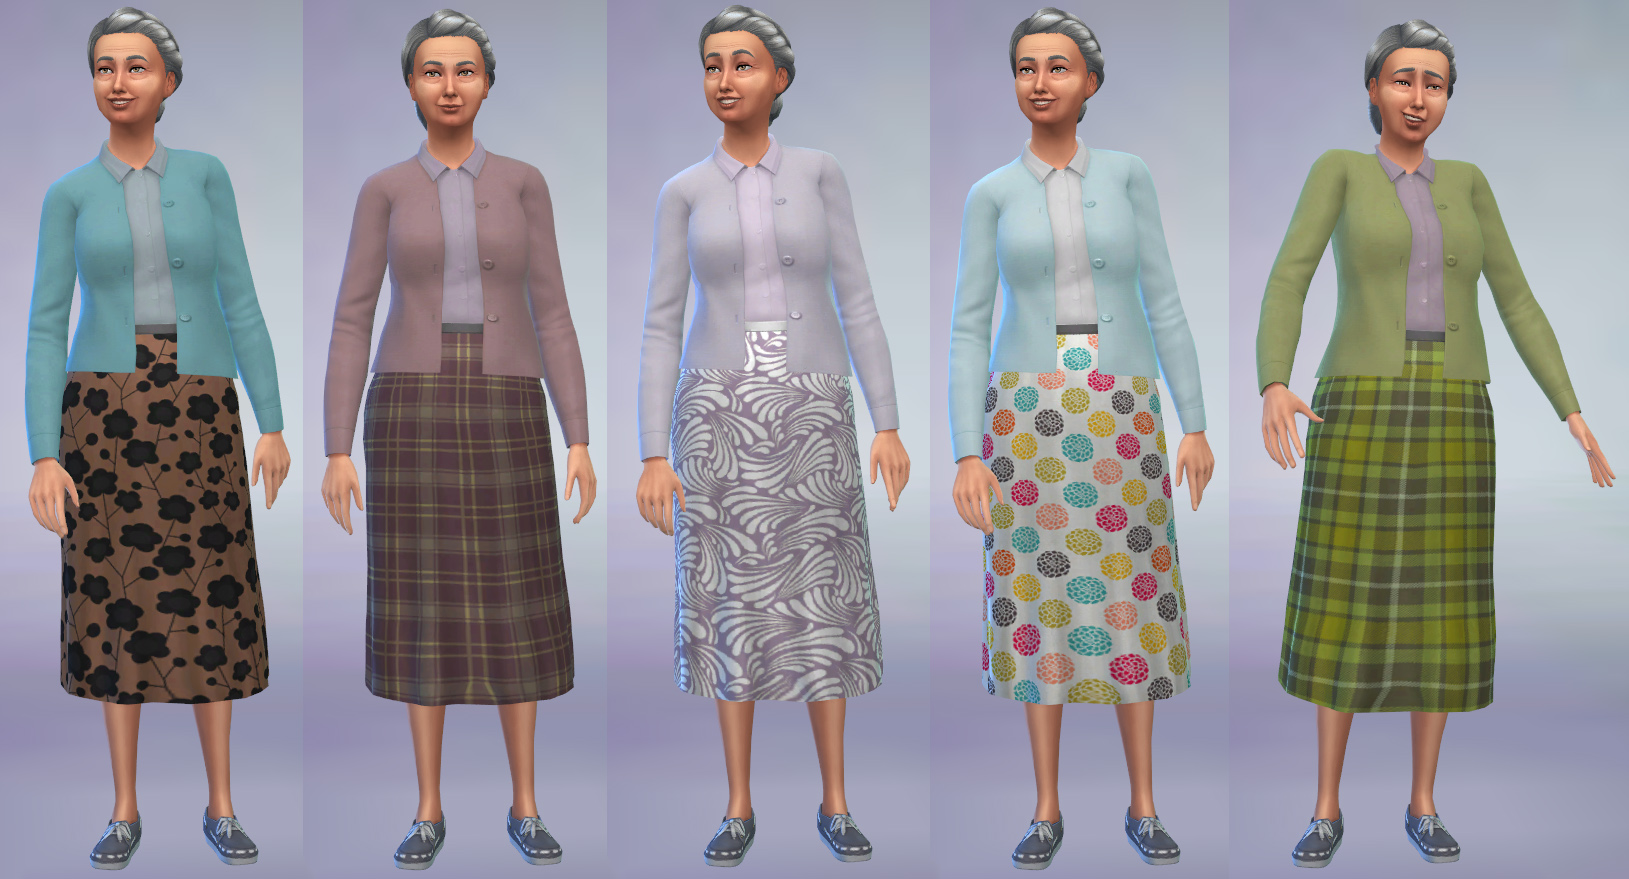 Mod the sims grandma cardigan and skirt outfit super for Grandmother dresses for grandson s wedding